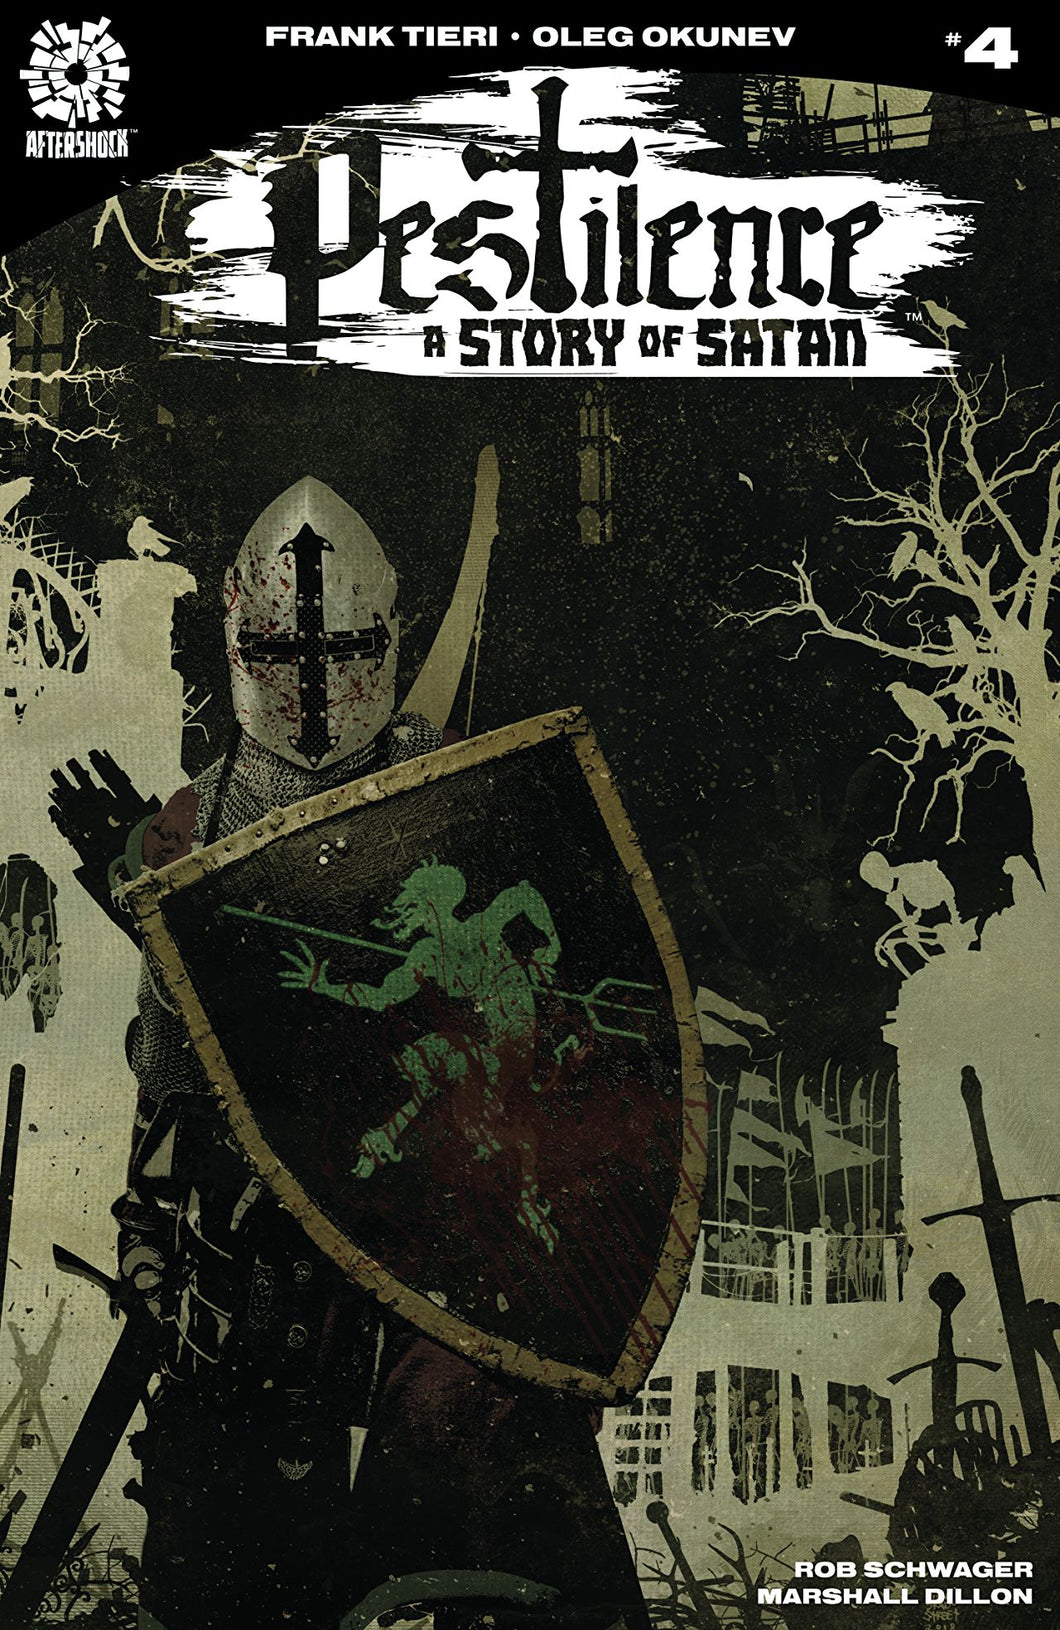 PESTILENCE STORY OF SATAN #4 (MR) (09/05/2018)